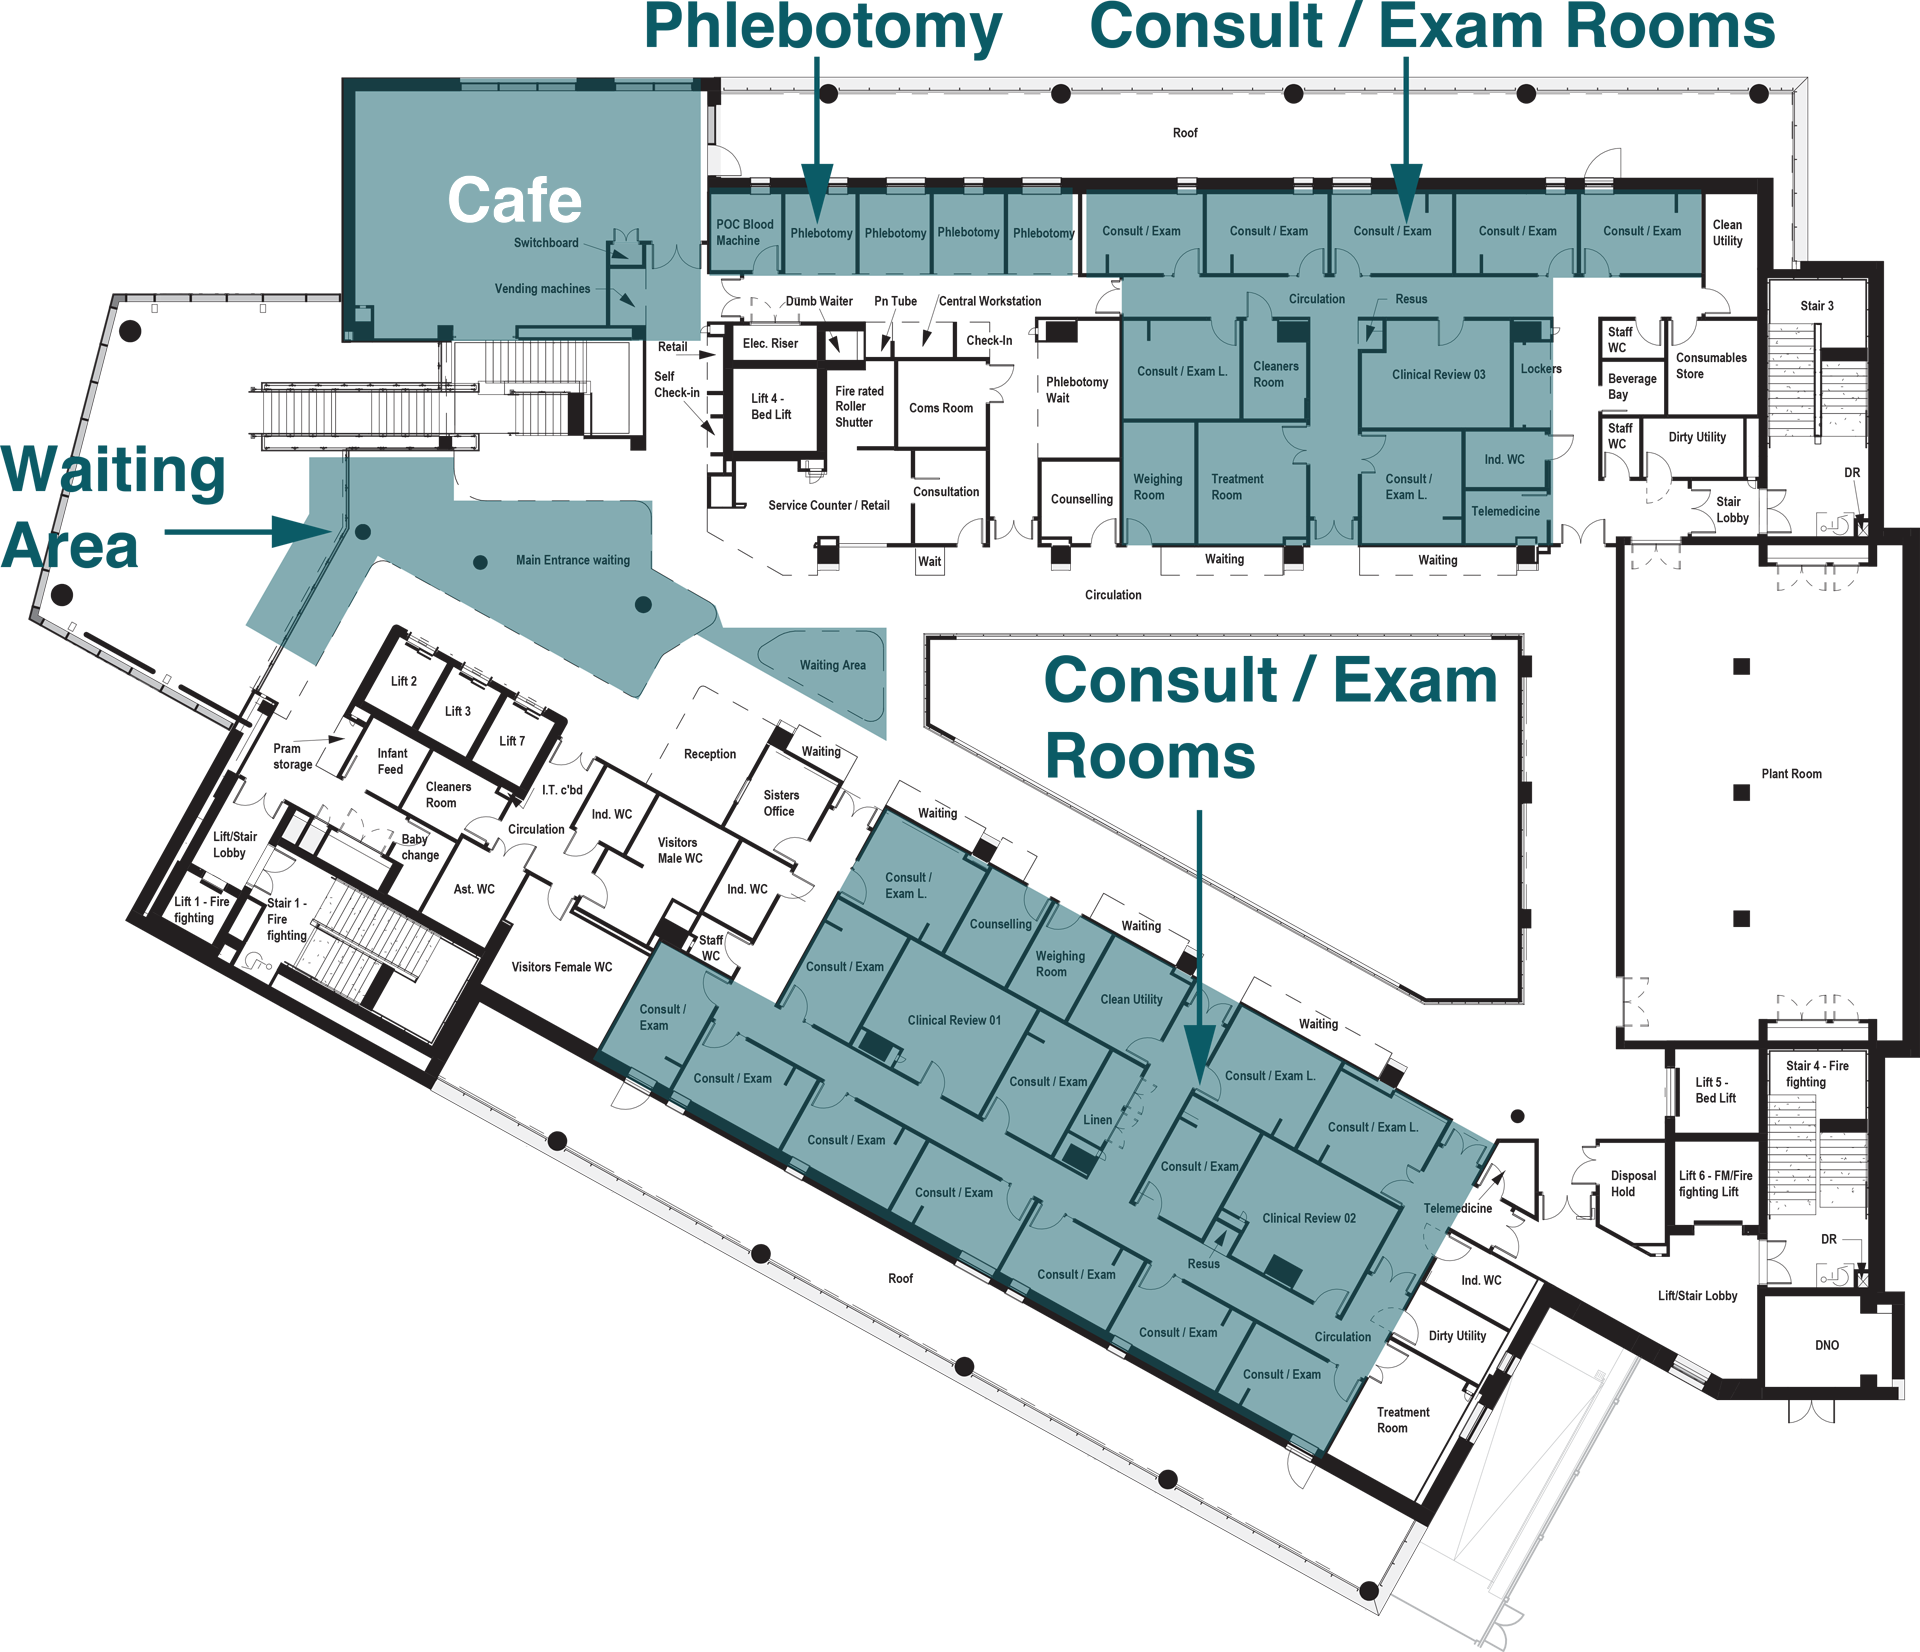 floor-plan-outpatients-and-cafe.png